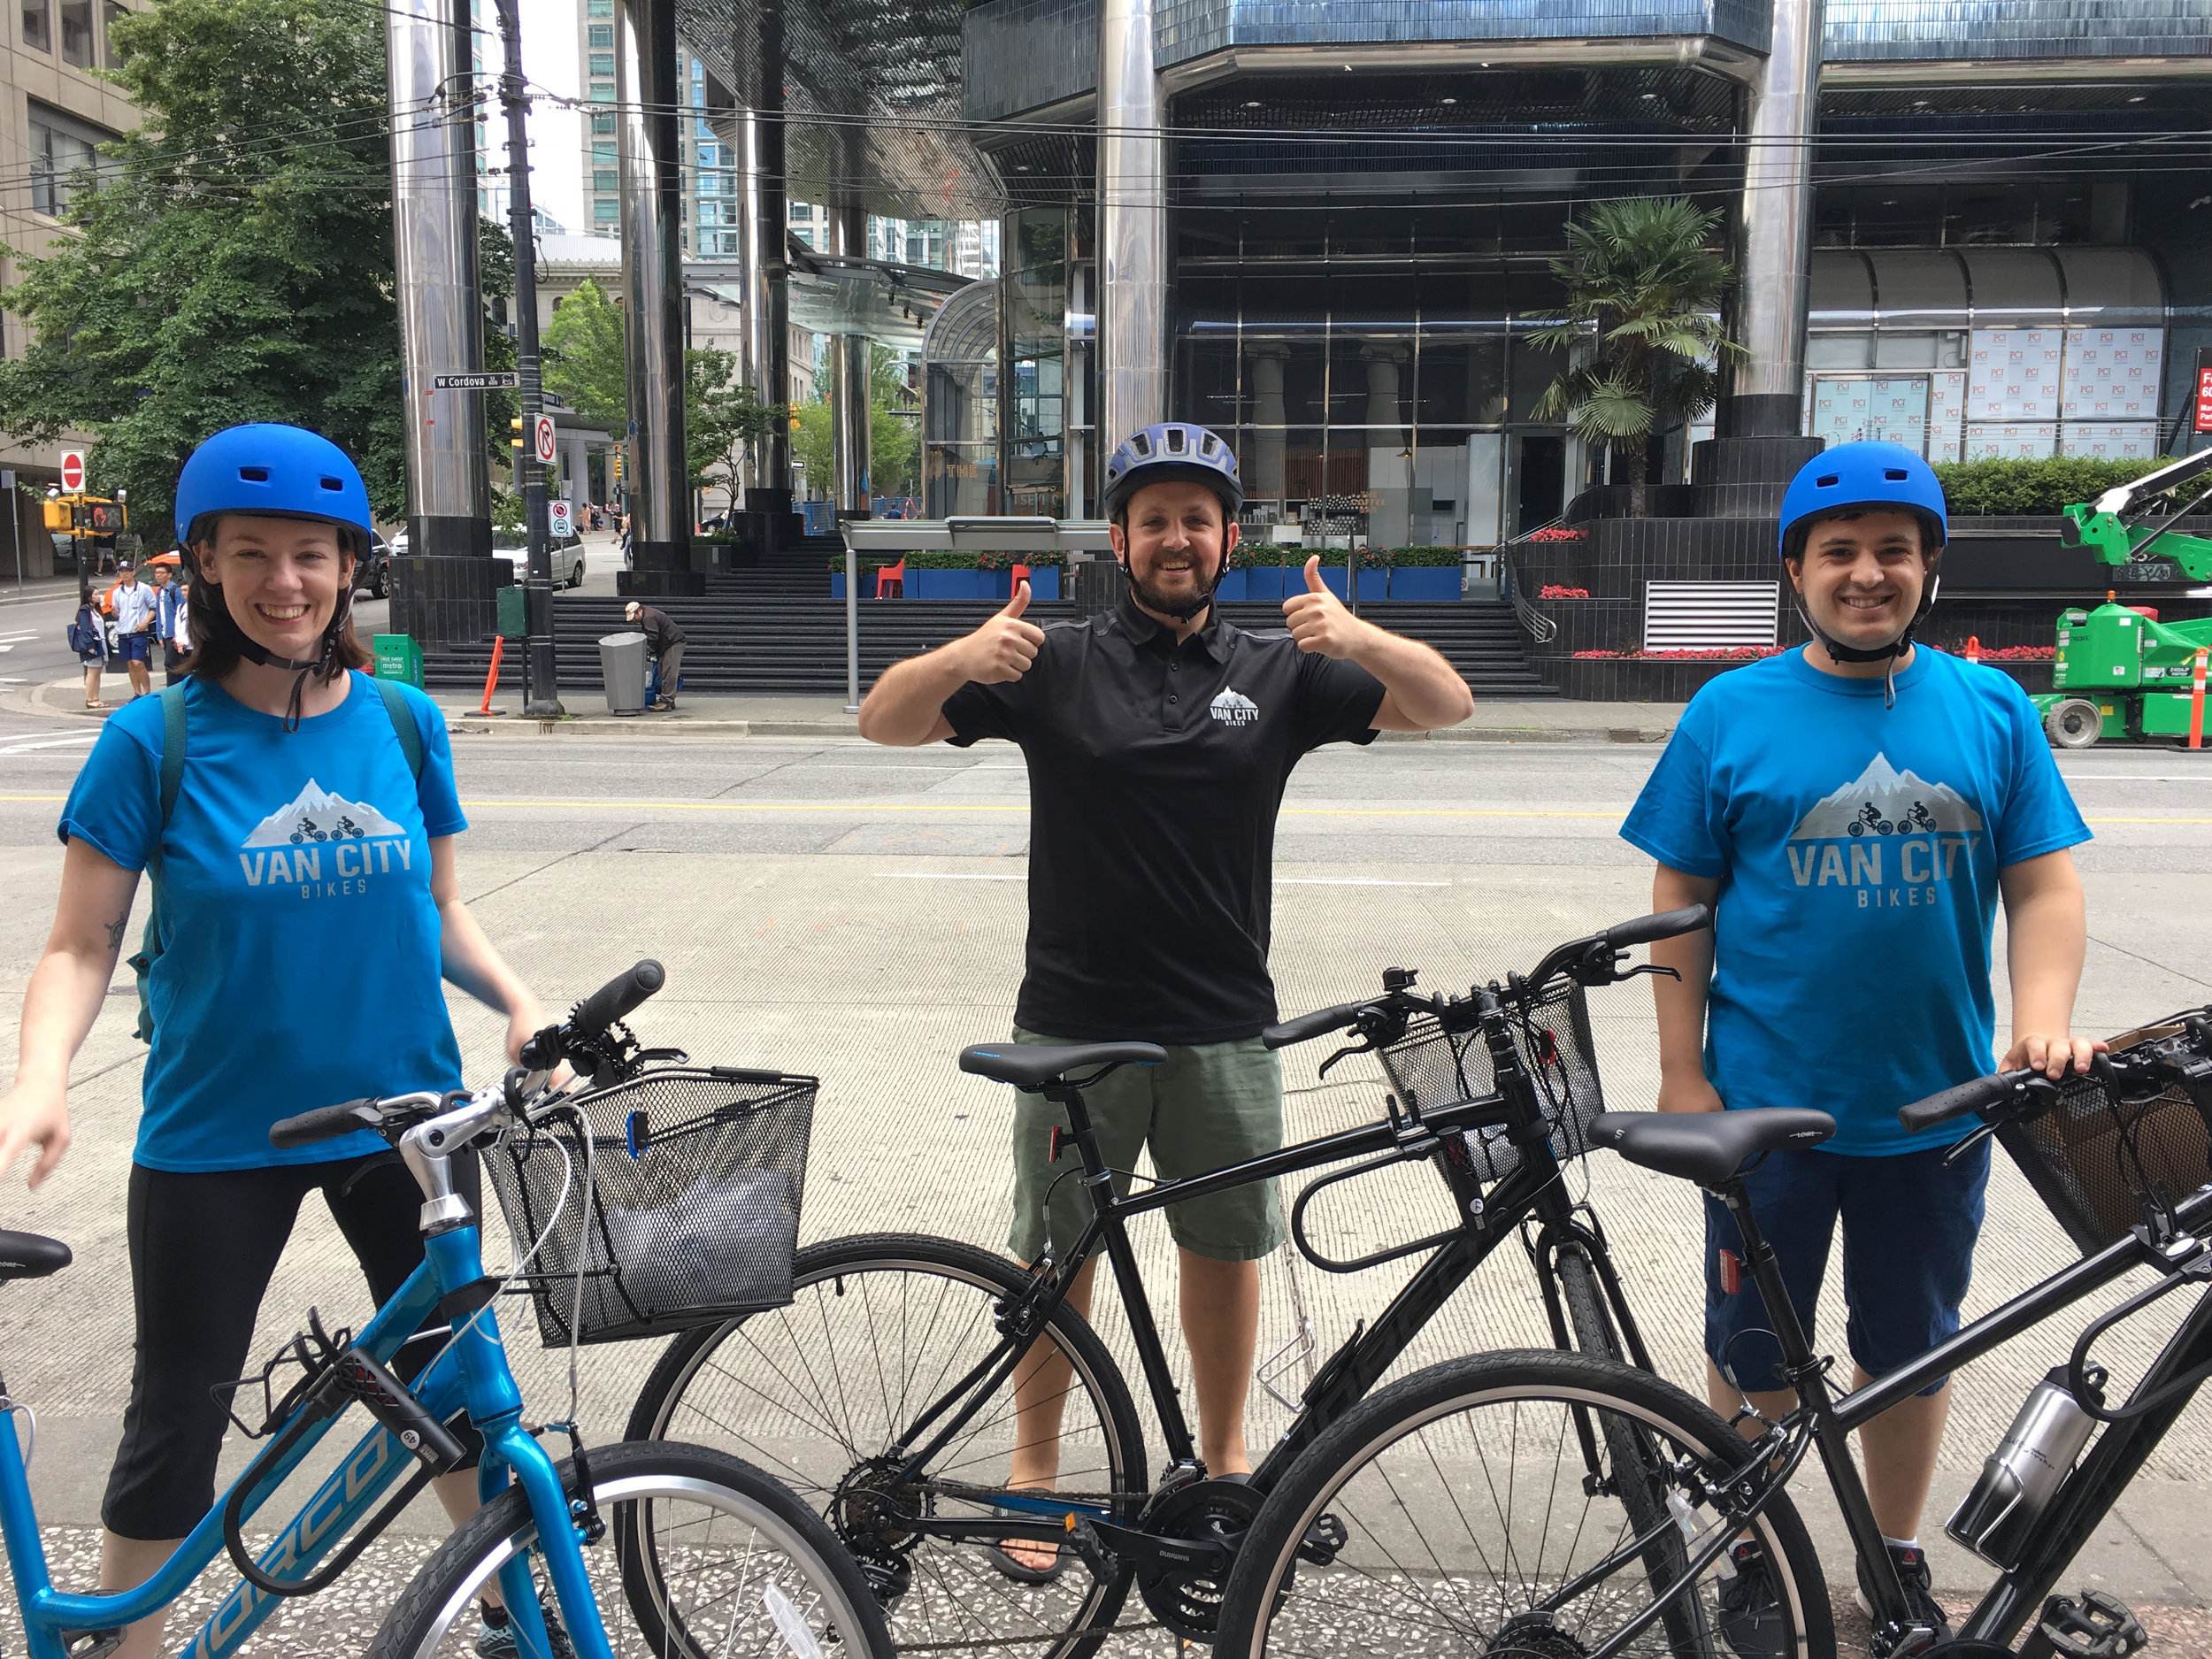 Our bike rental vancouver team